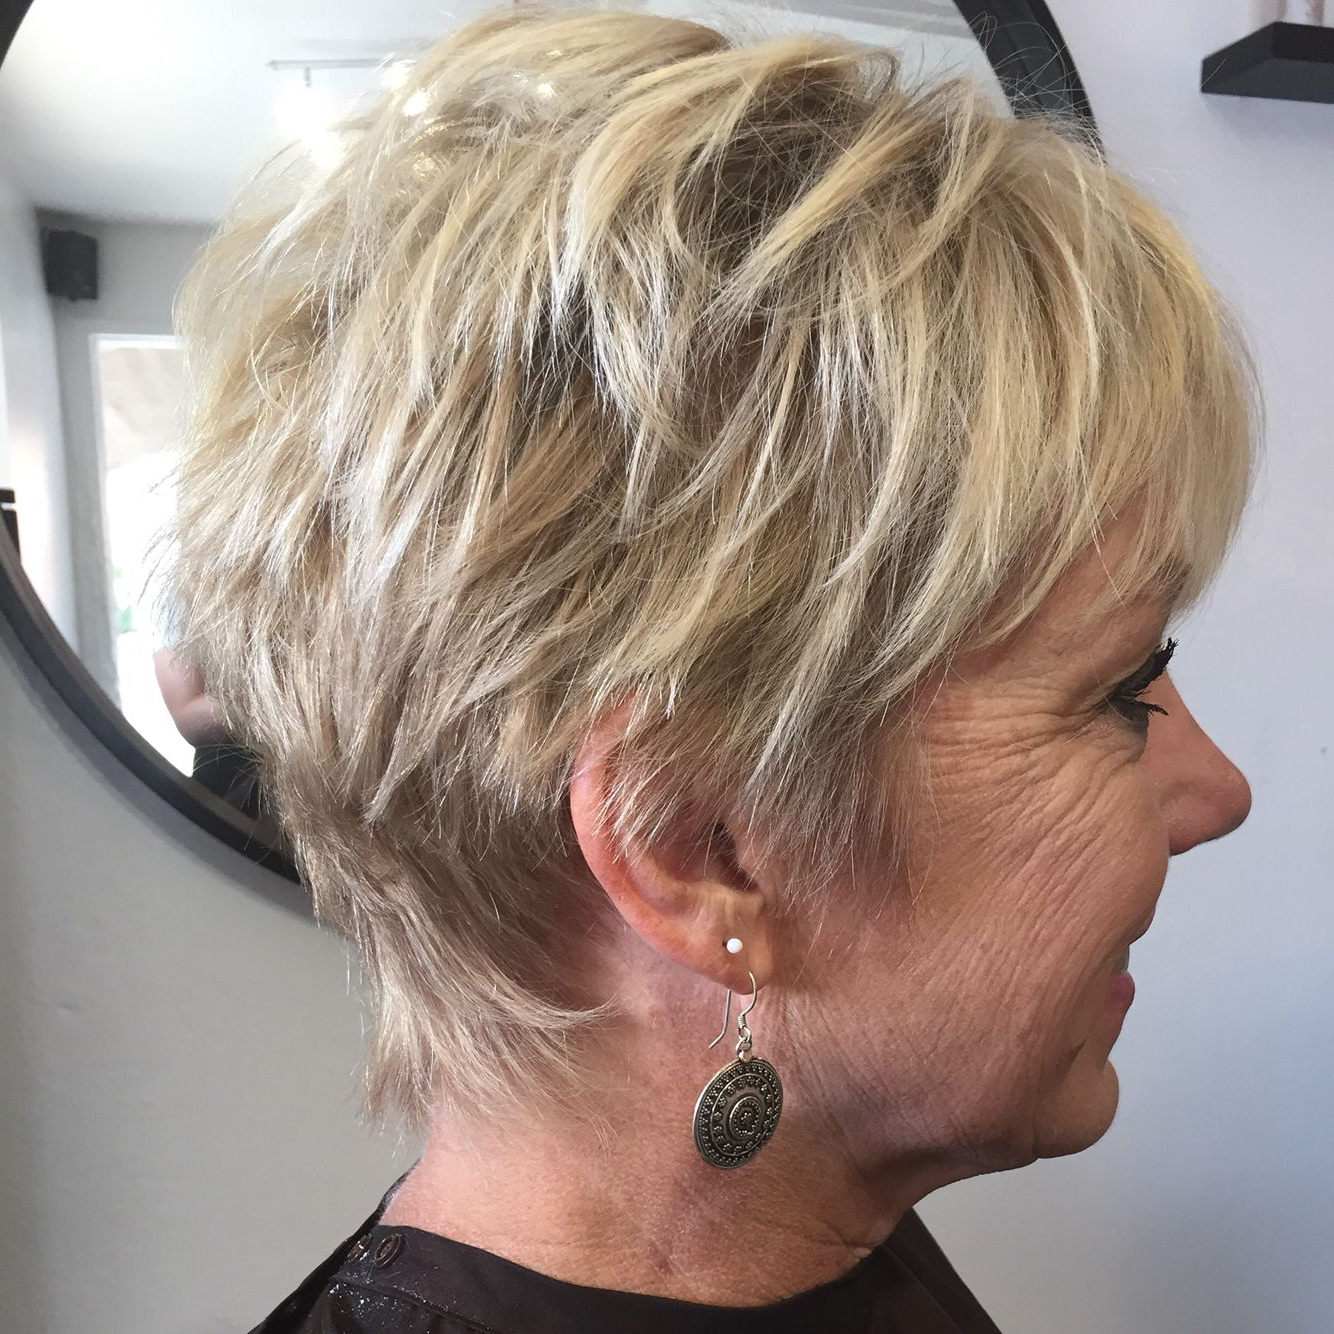 Short Blonde Pixie Cut, Short Hair With Highlights, Short Hair With Pertaining To Short Ruffled Hairstyles With Blonde Highlights (Gallery 3 of 20)